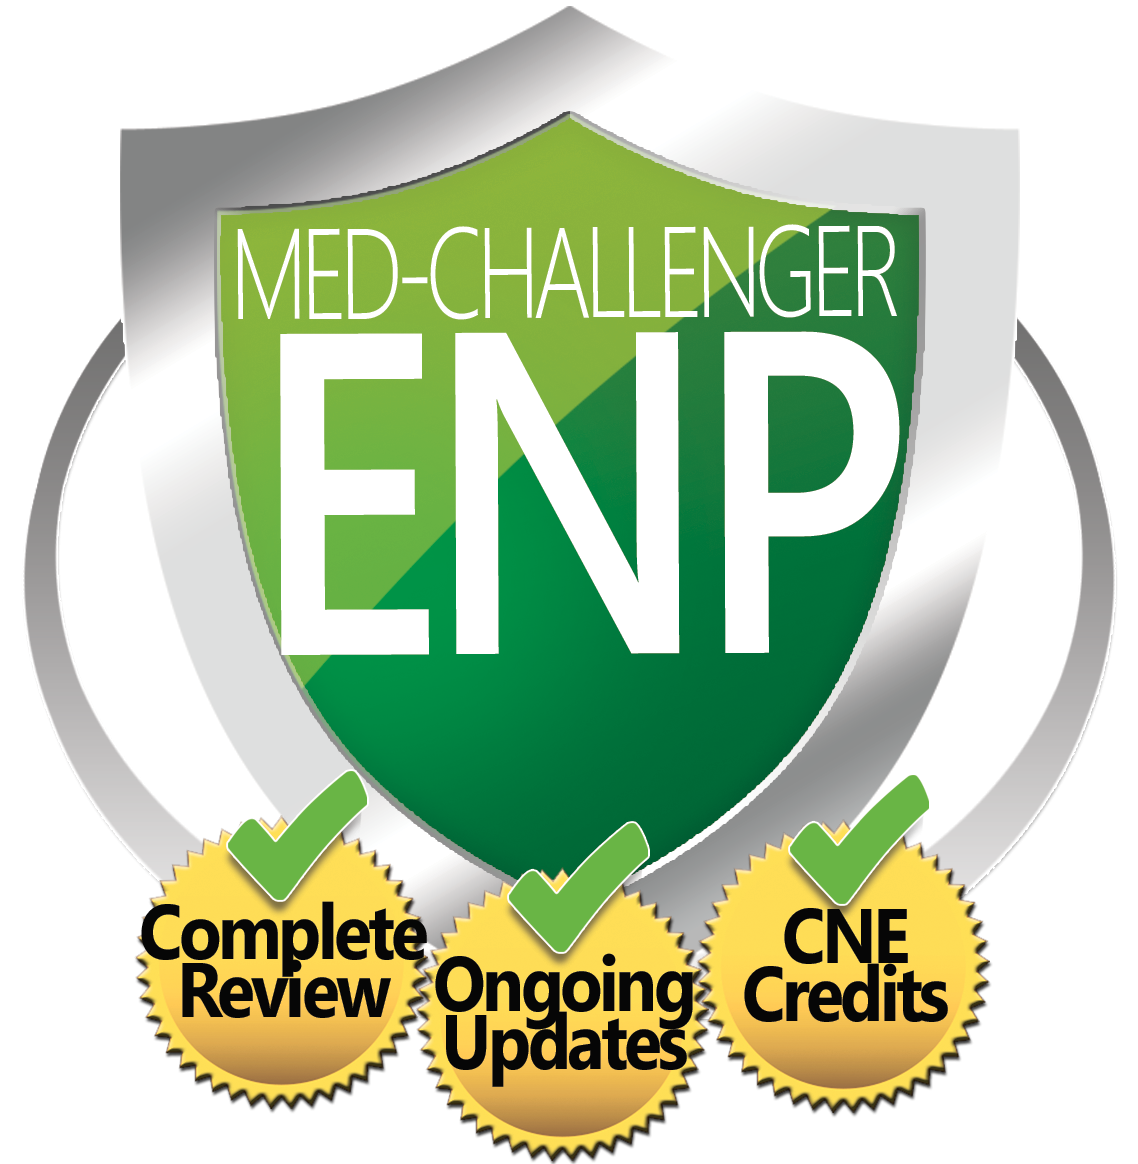 Emergency Nurse Practitioner Board Review, Med-Challenger NP, Complete Review, Ongoing Updates, CNE Credits